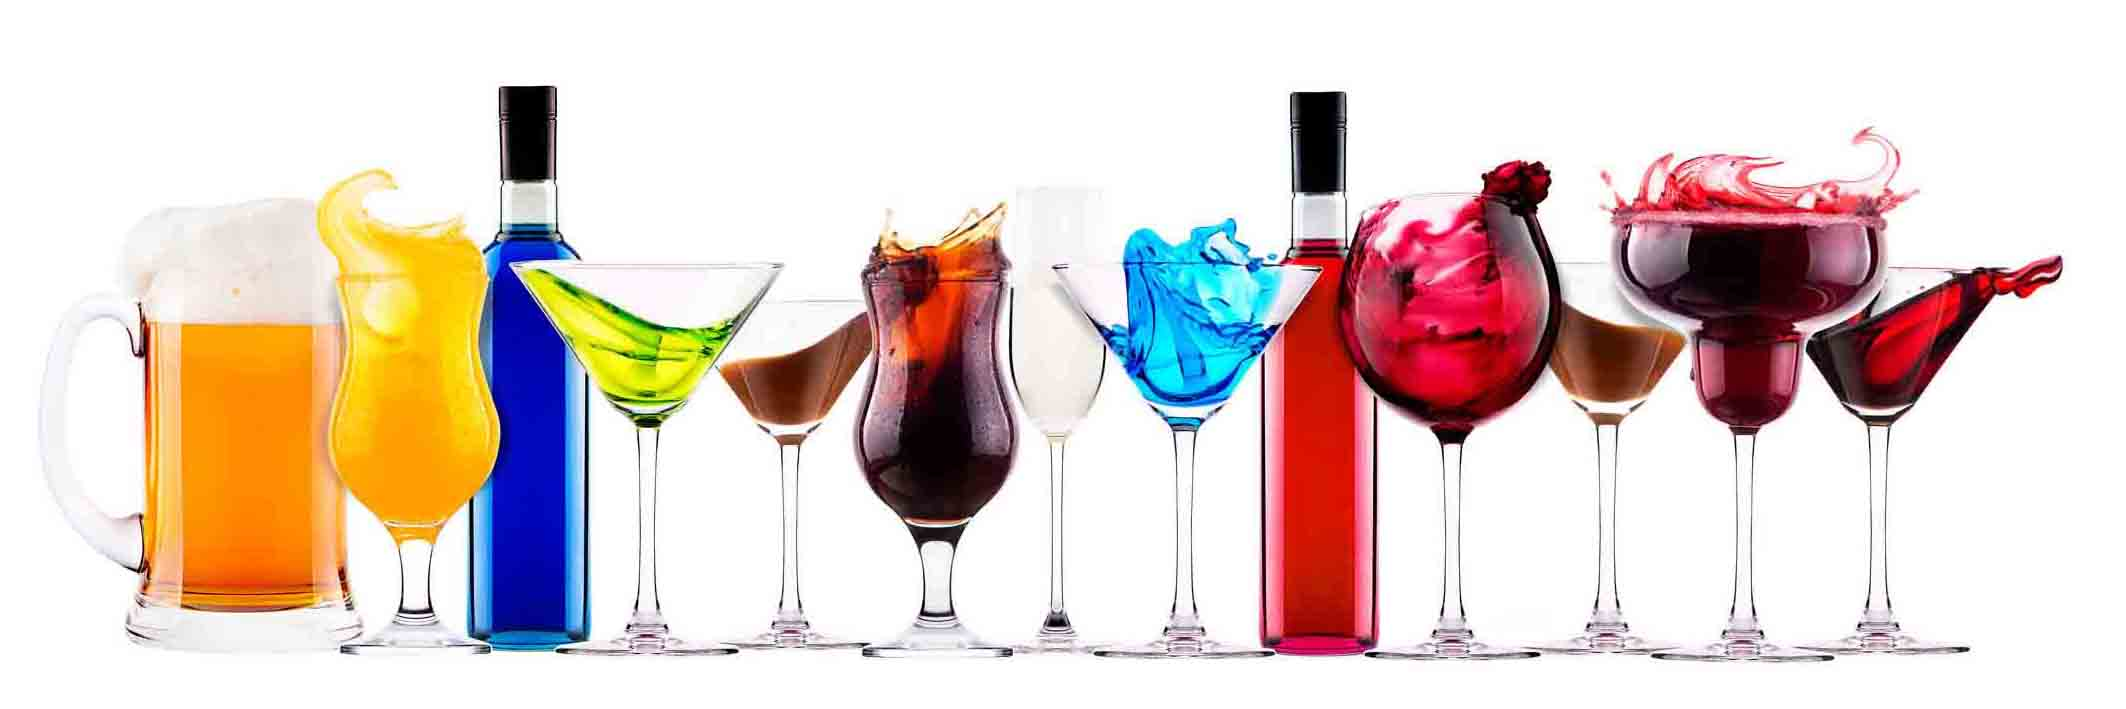 29365958 - set of different alcoholic drinks and cocktails - beer,martini,soda,champagne,whiskey,wine,cola,cocktail